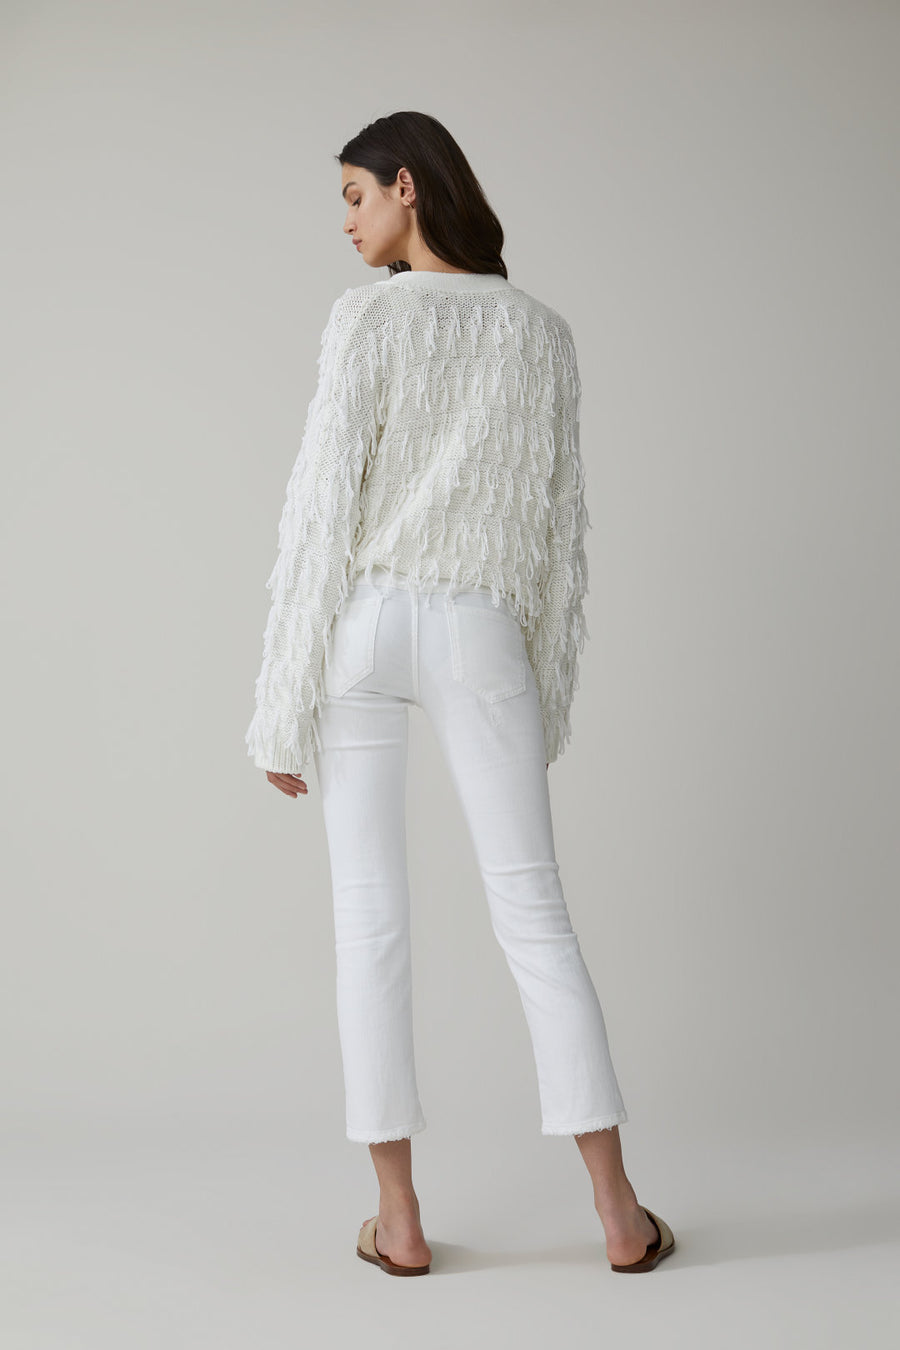 Closed Starlet White Jeans